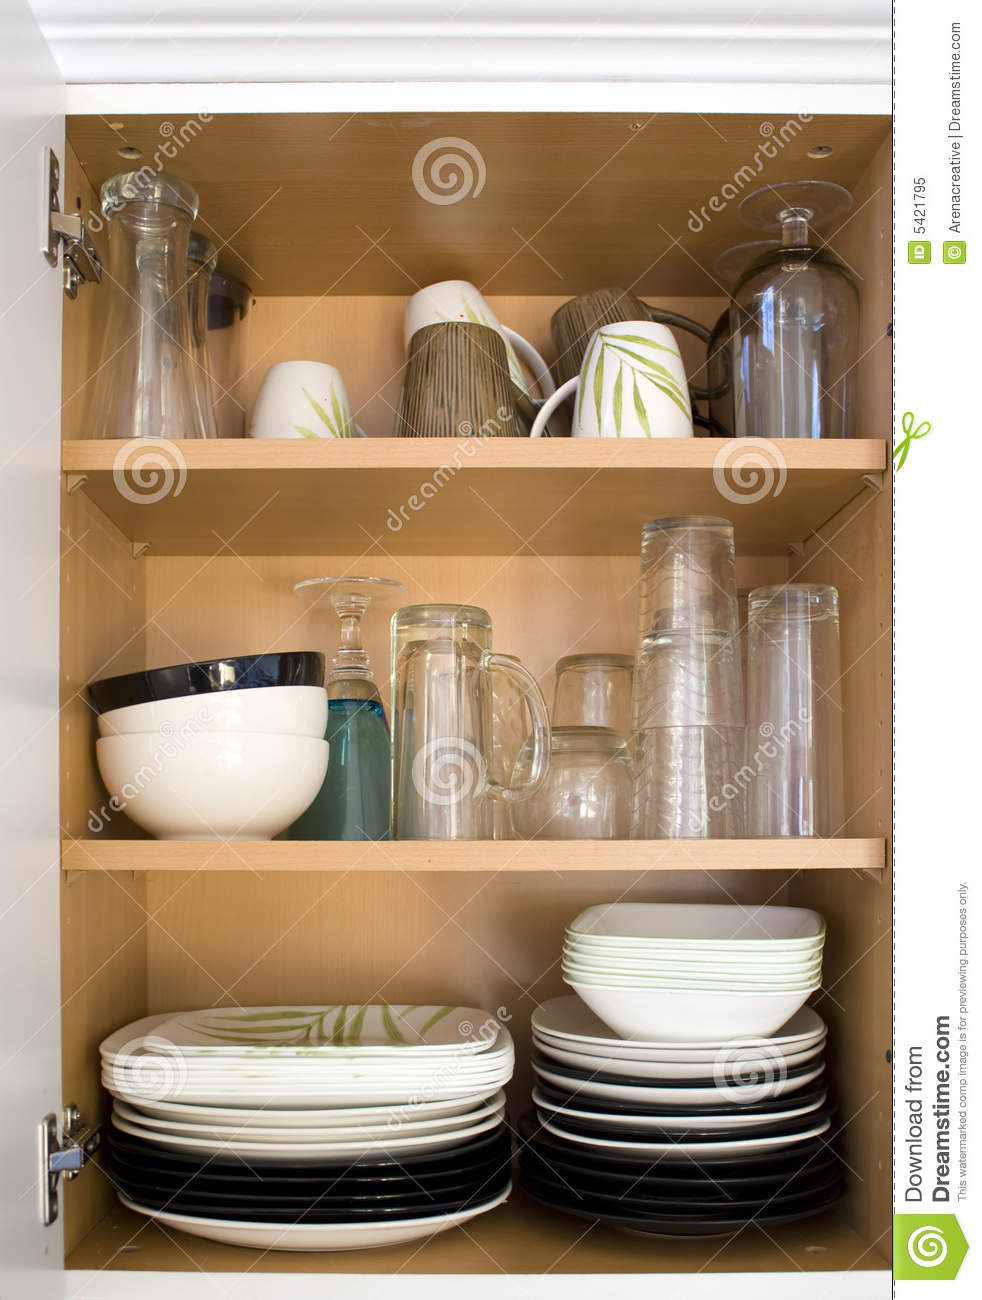 Dishes in the Cupboard